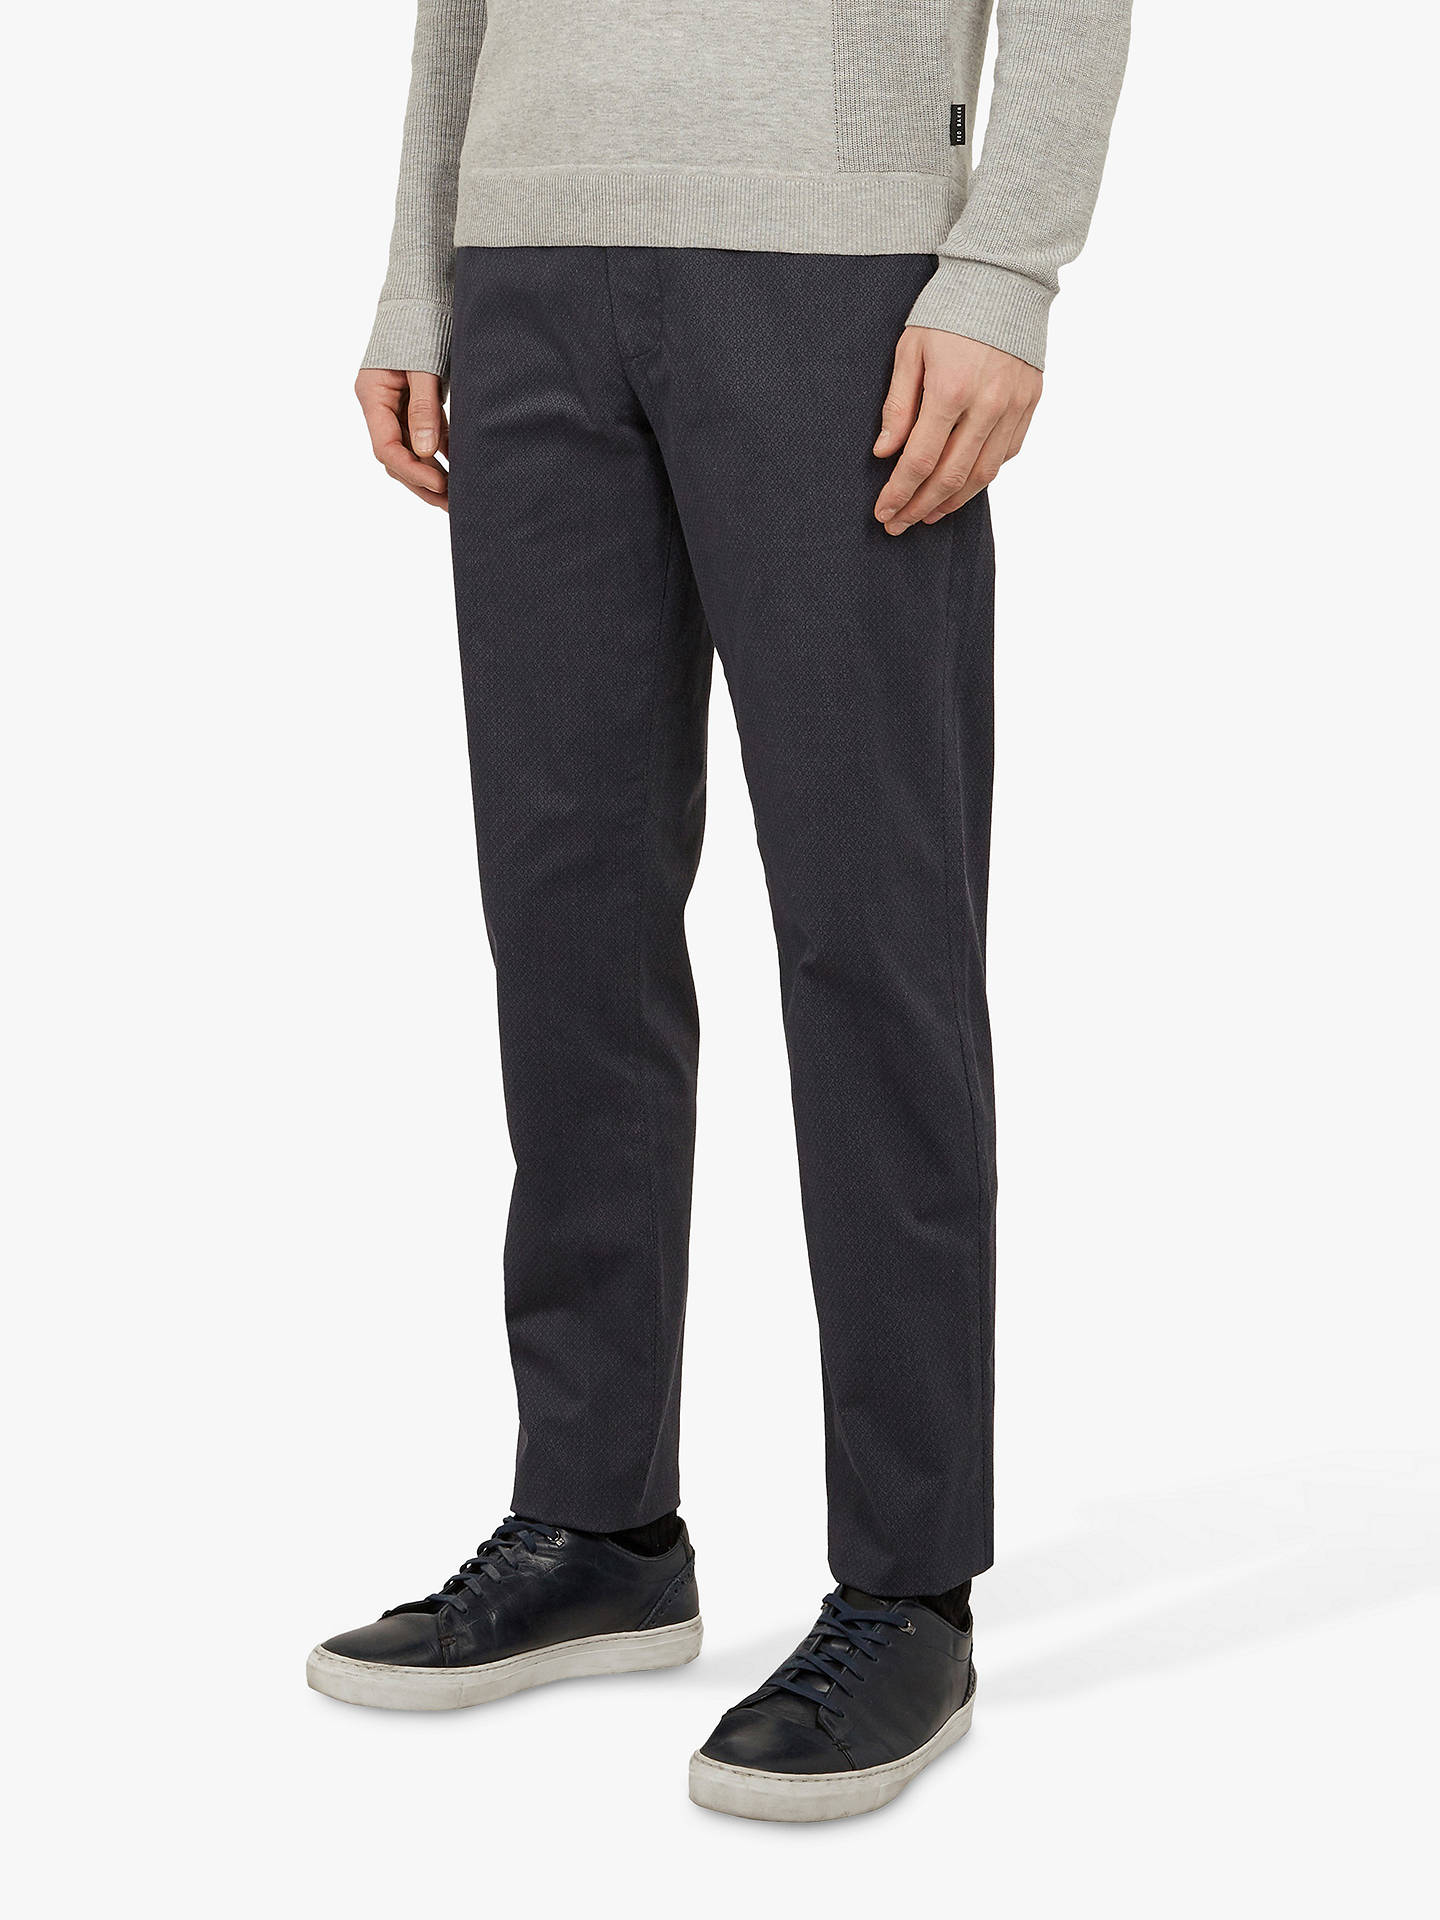 Ted Baker Icelnd Slim Fit Printed Trousers Navy At John